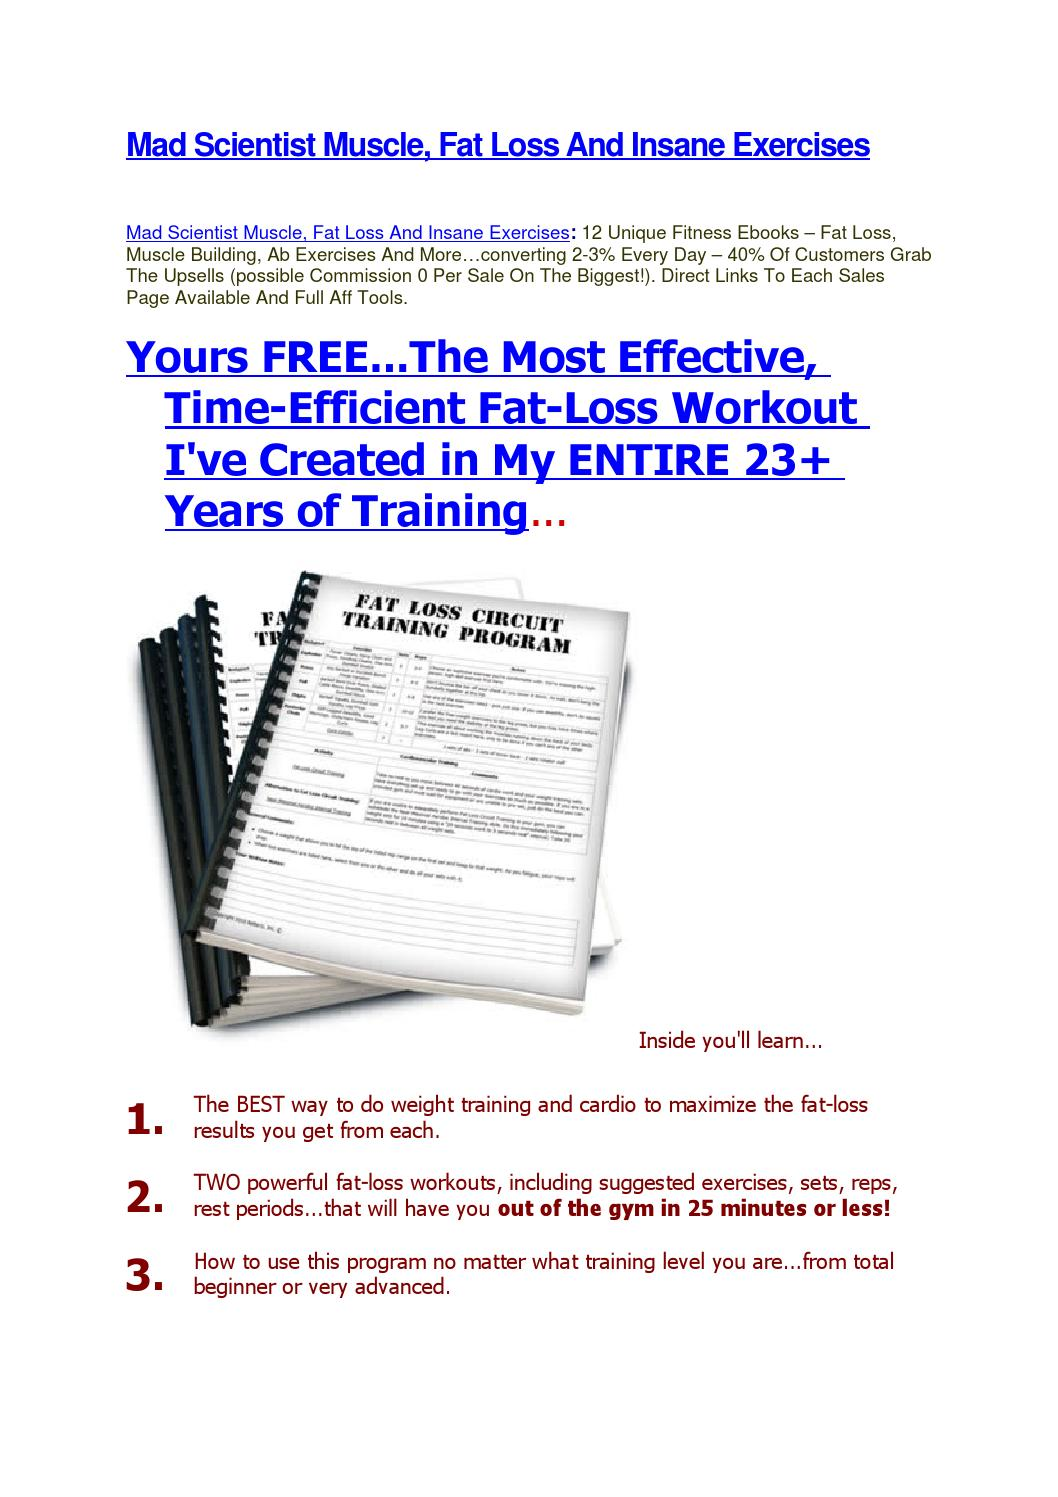 Mad Scientist Muscle Fat Loss And Insane Exercises By Mahdi Bchour